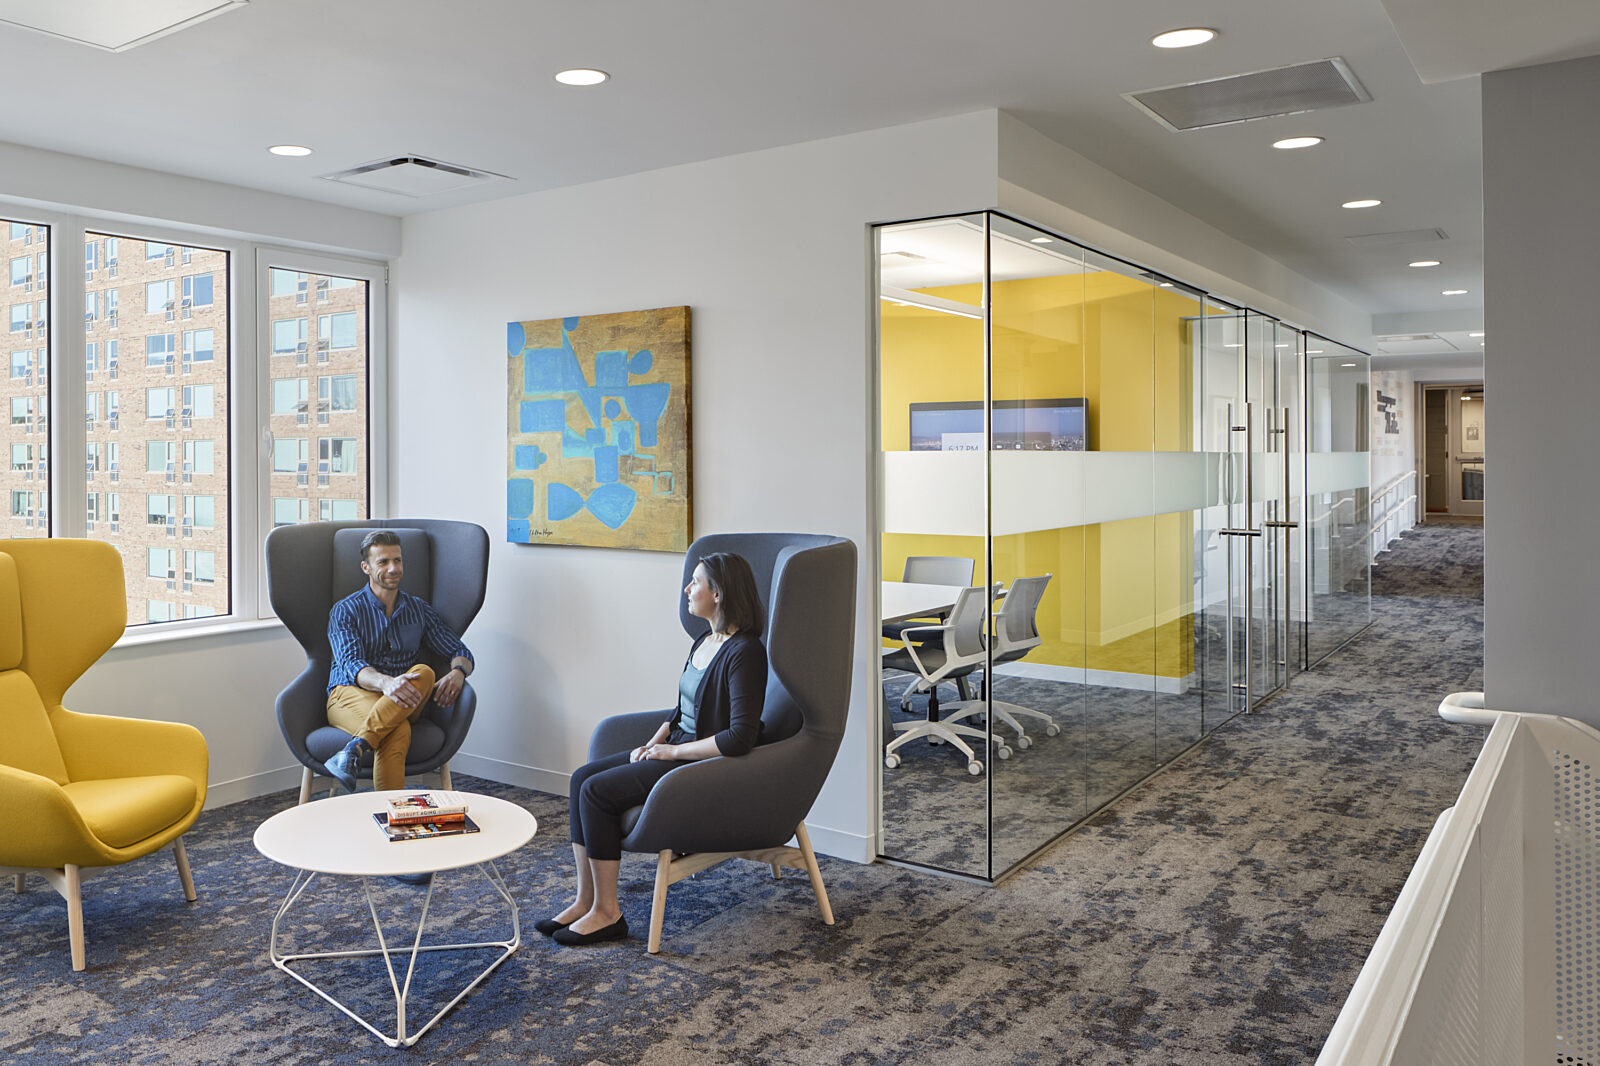 lounge chairs, glass walls, conference rooms